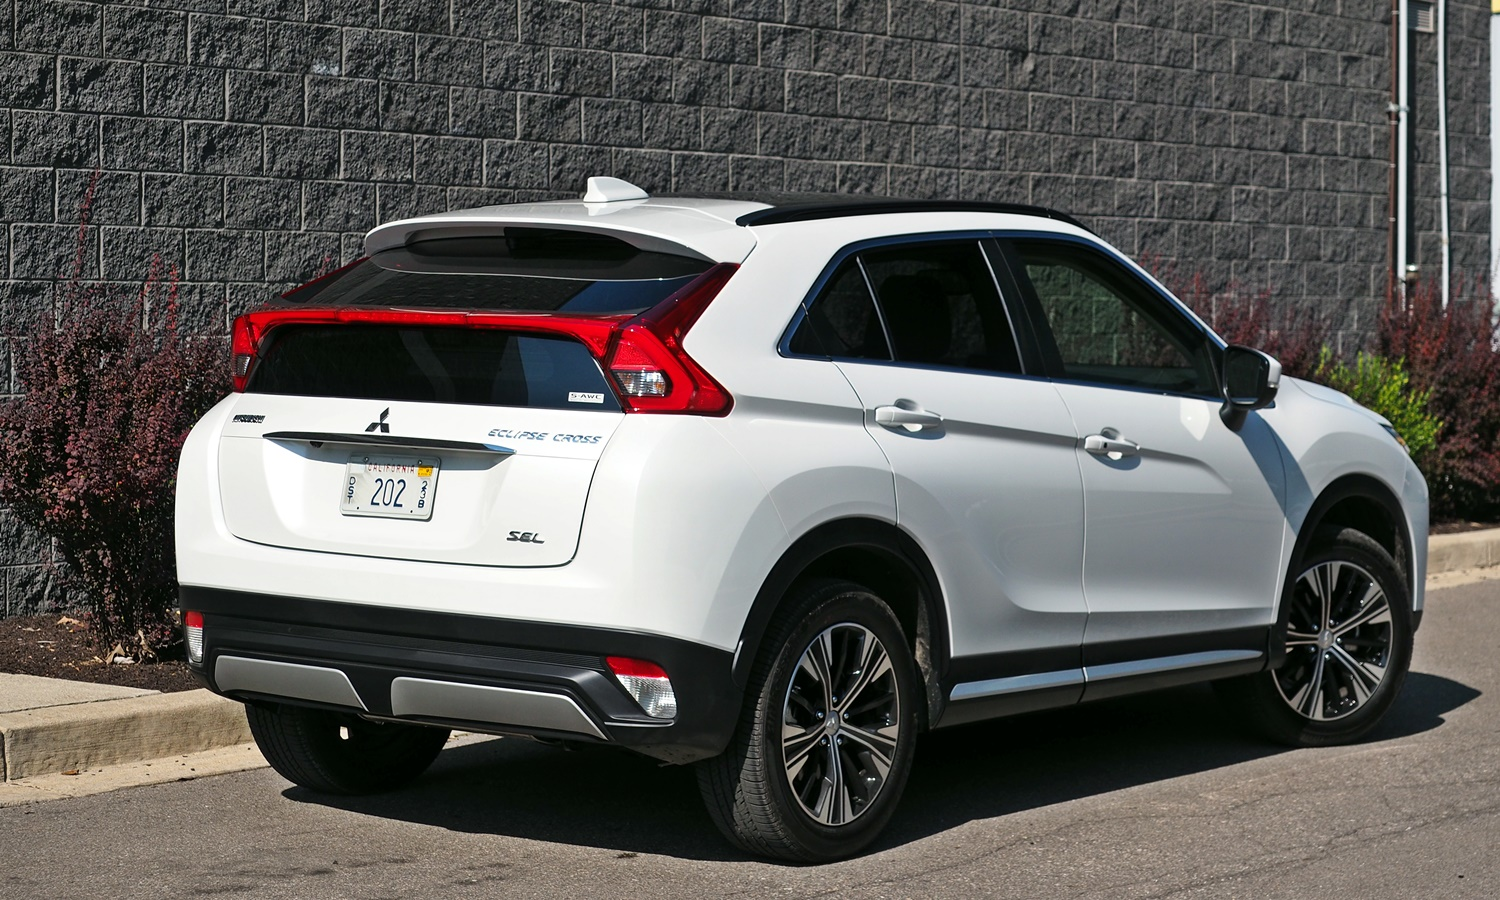 Mitsubishi Eclipse Cross Photos: 2018 Mitsubishi Eclipse Cross rear quarter view